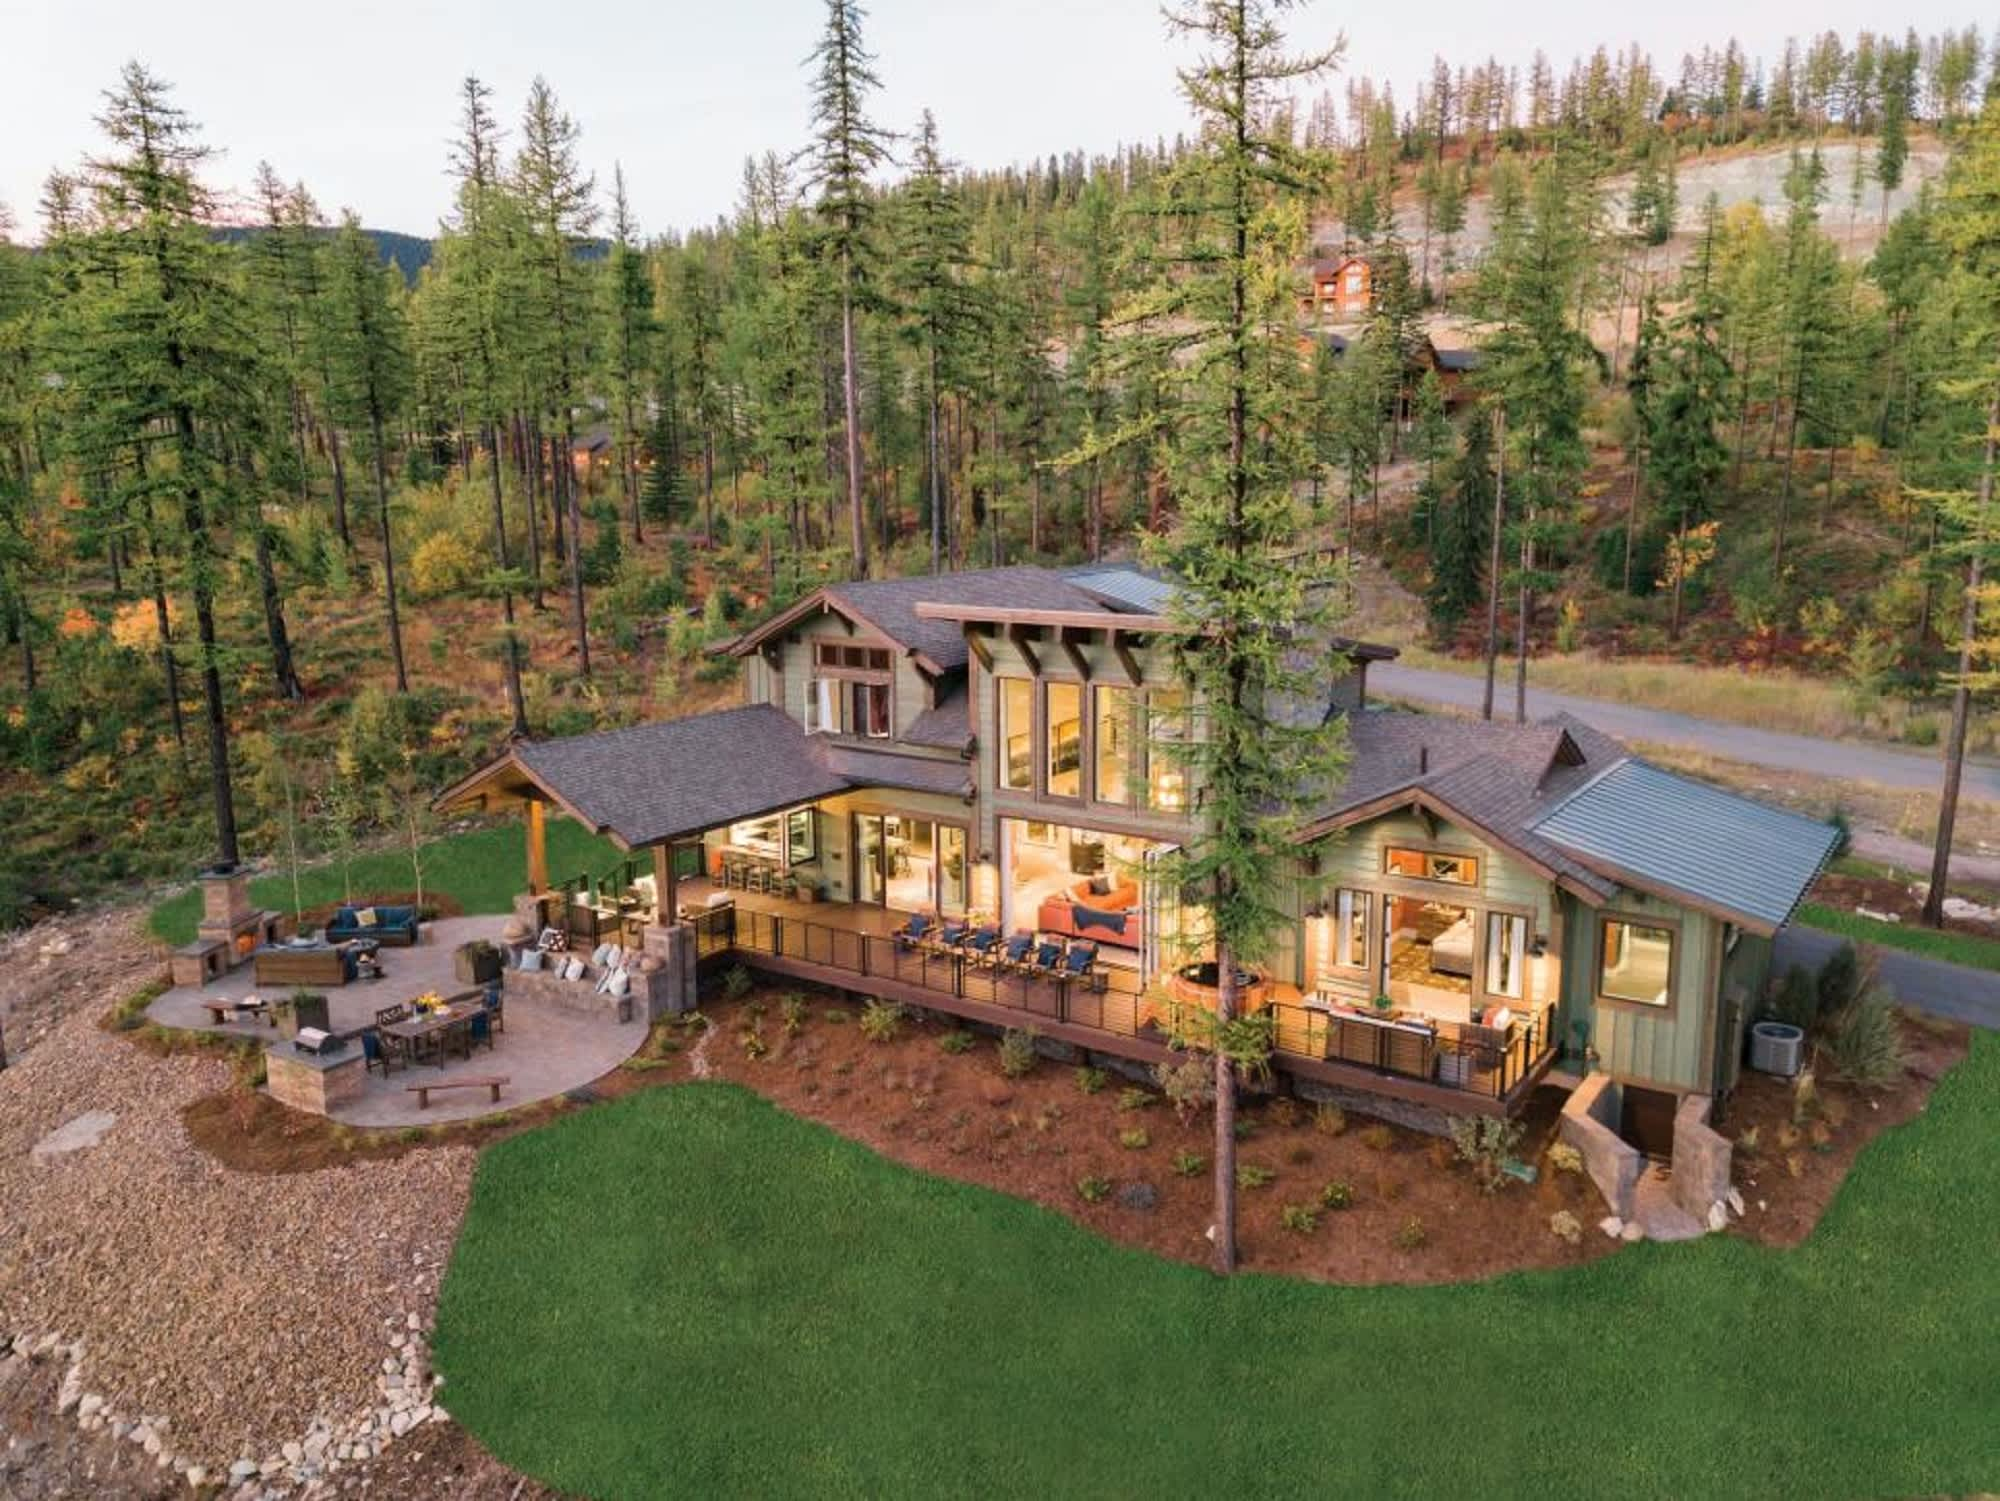 Look Inside The 2 Million Montana Dream Home Hgtv Just Gave Away